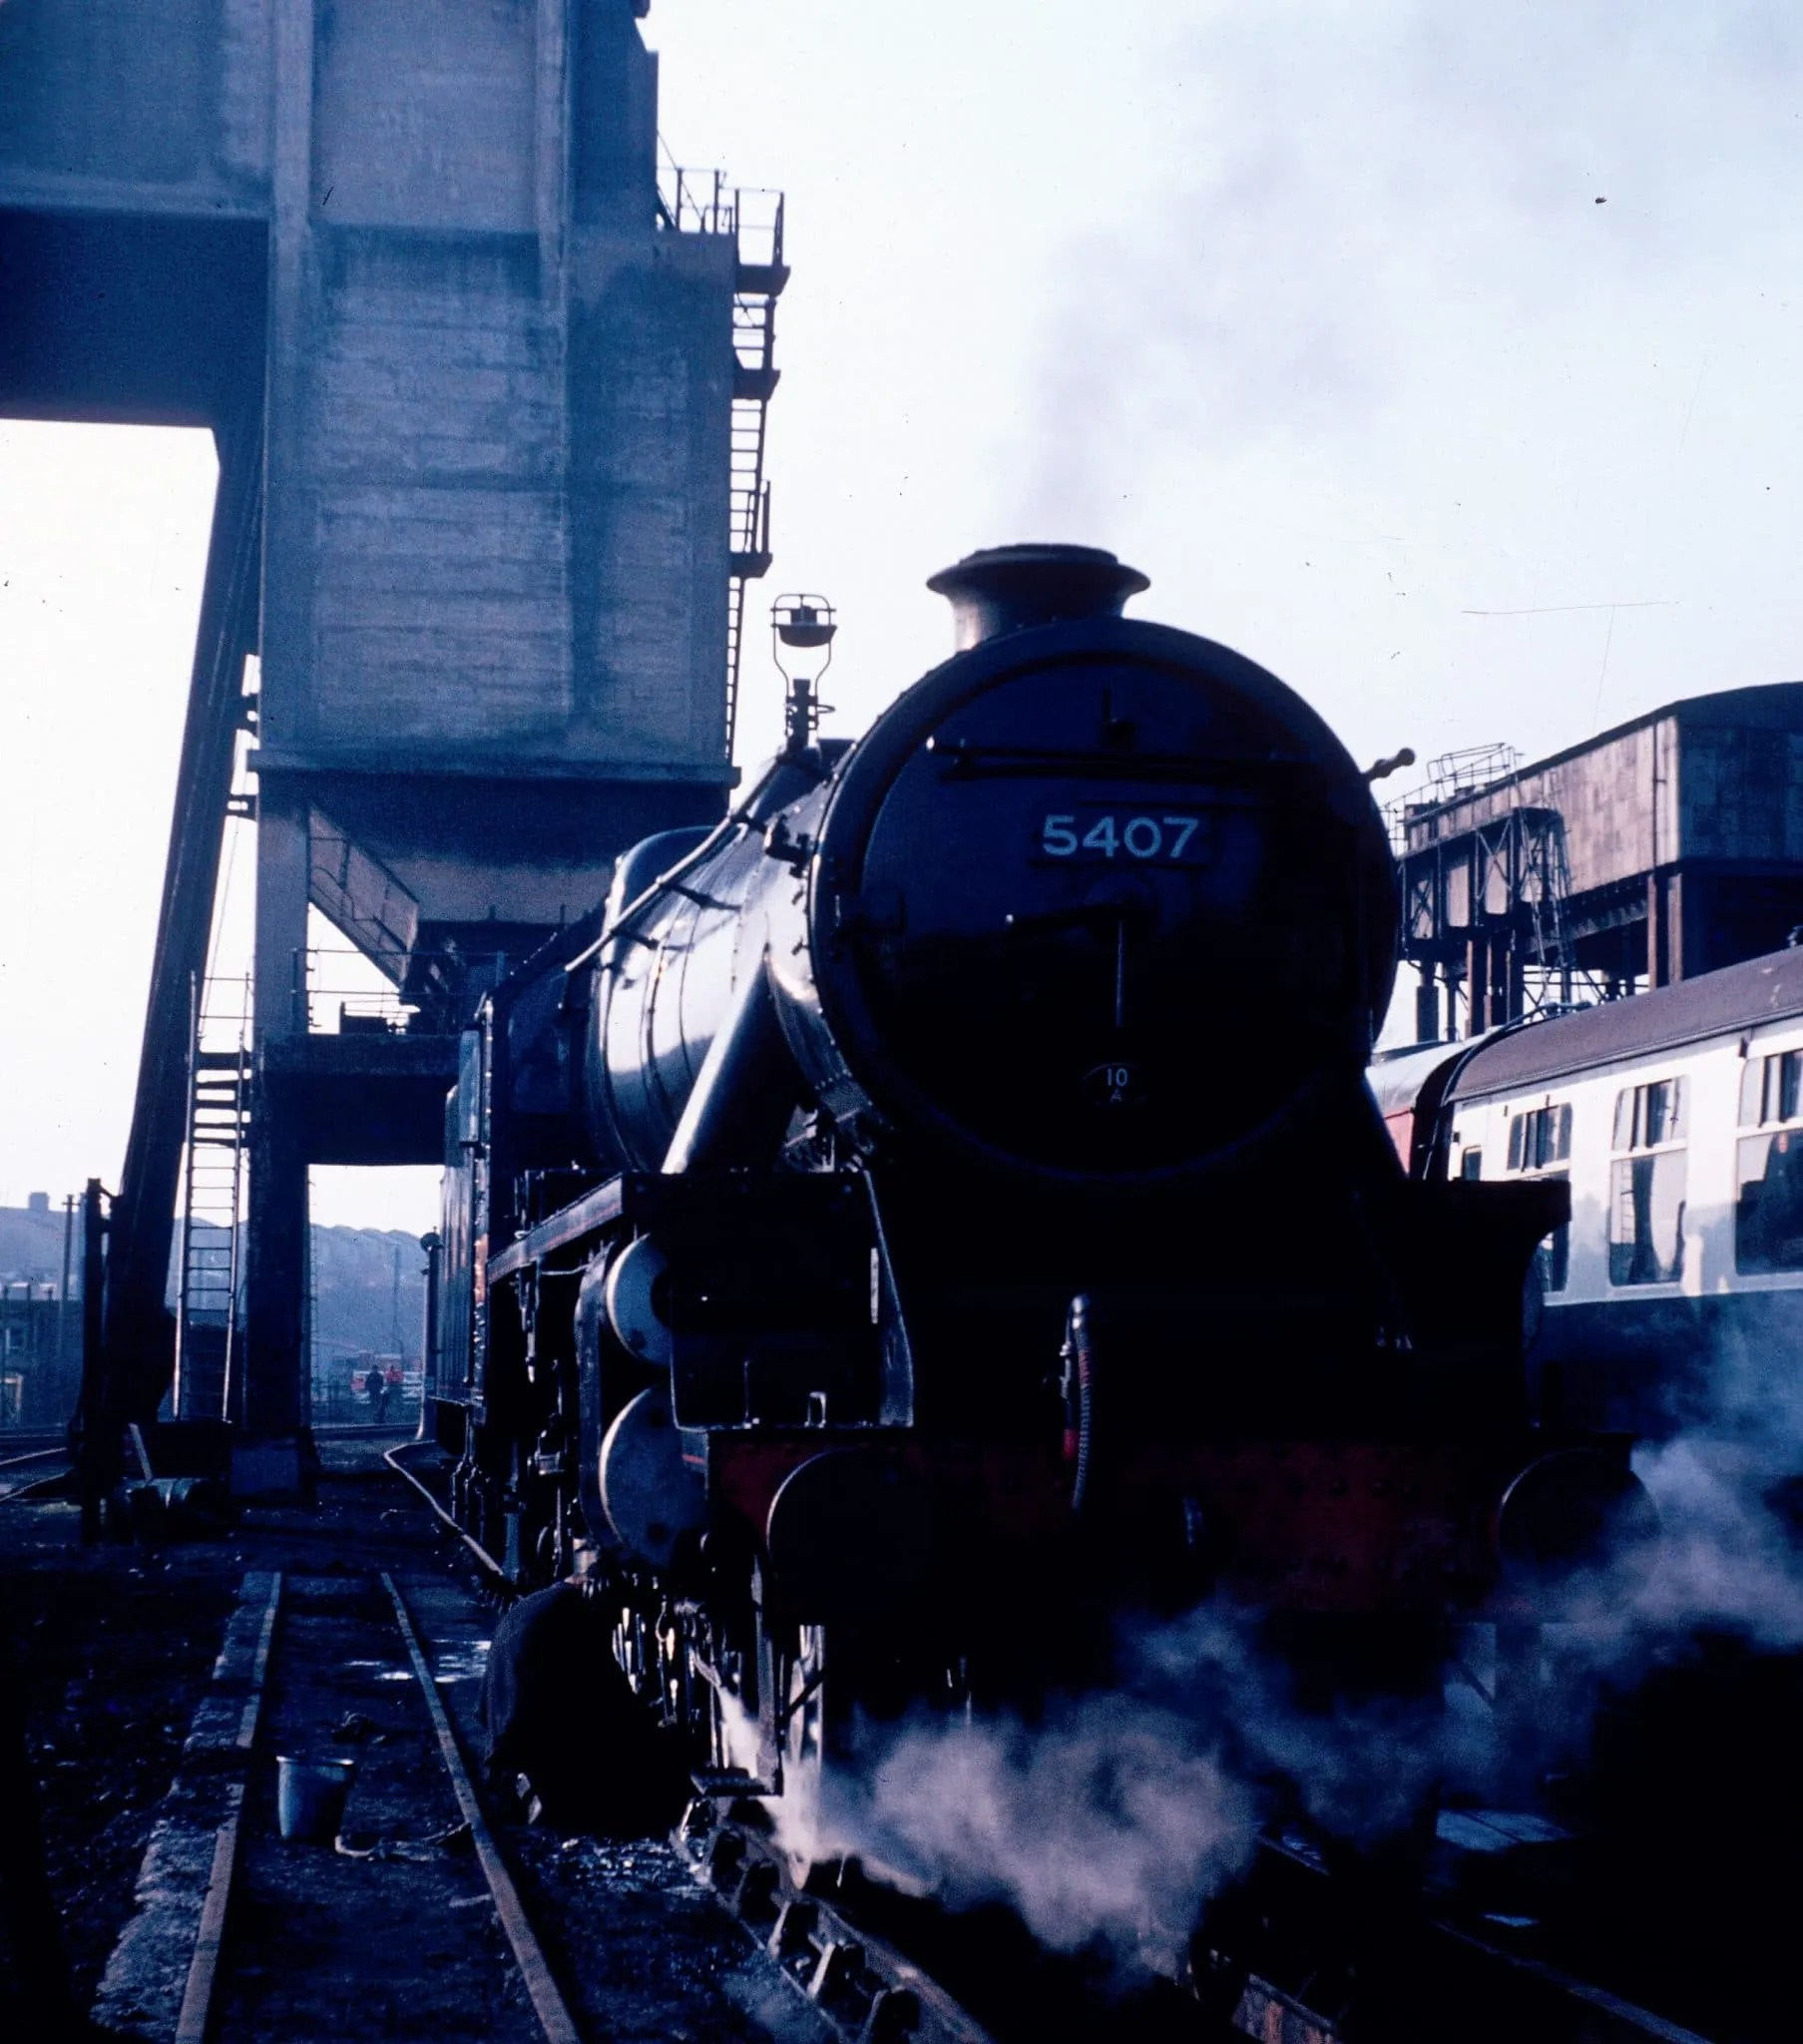 STanier Black Five 5407 Carnforth under coaling towers